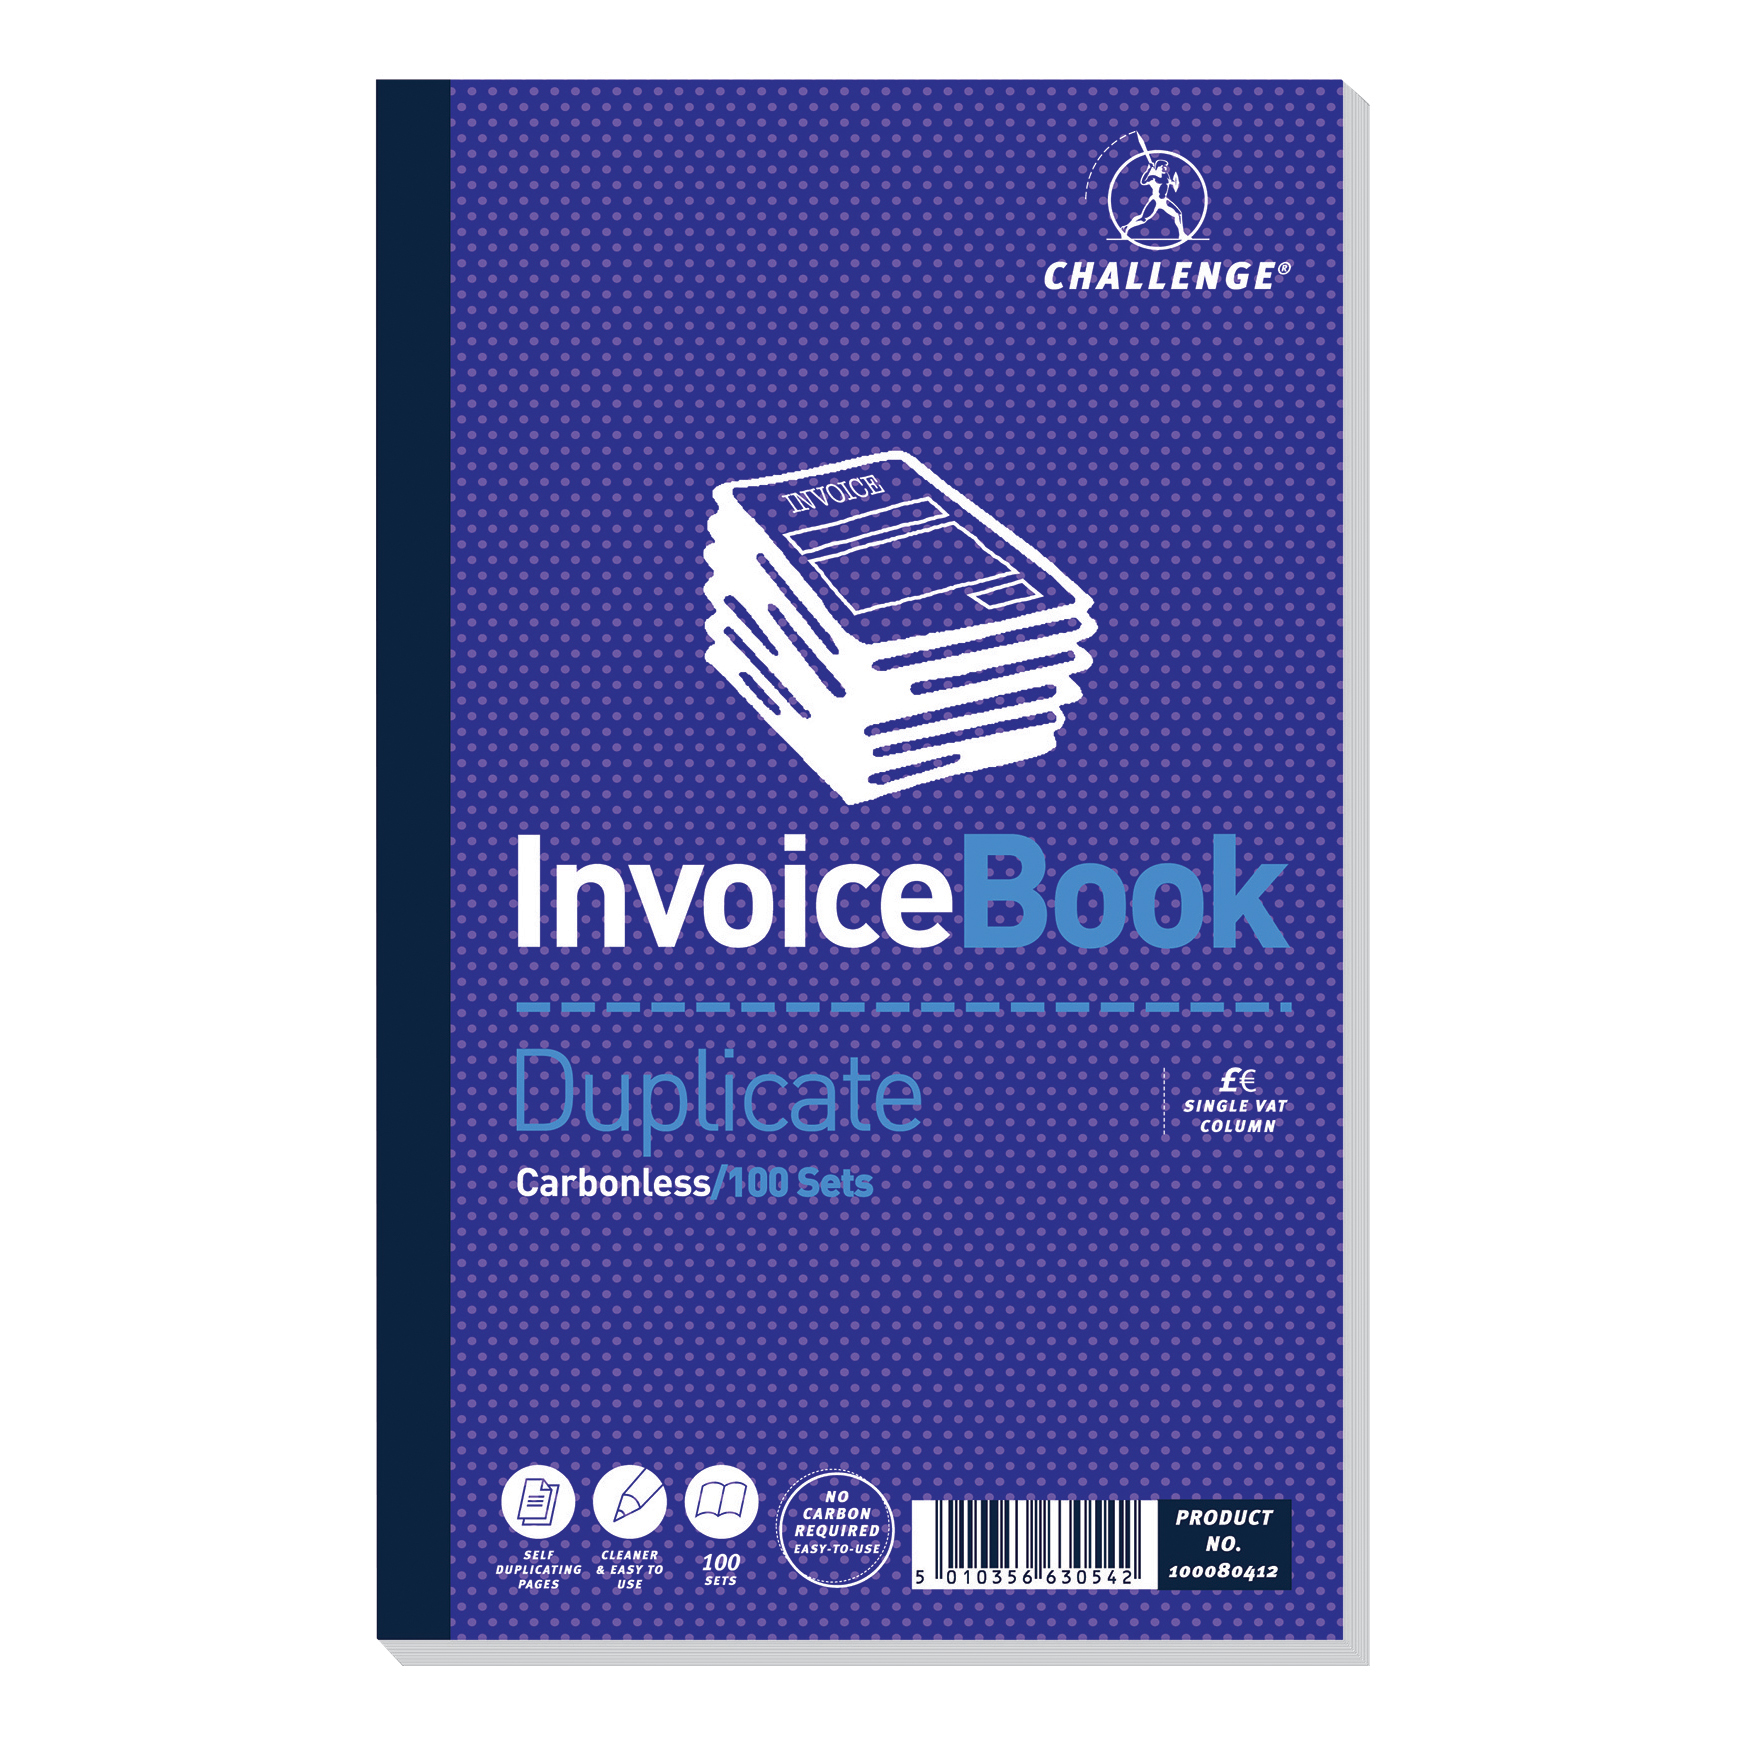 Image for Challenge Duplicate Book Carbonless Invoice Single VAT/Tax 100 Sets 210x130mm Ref 100080412 [Pack 5]